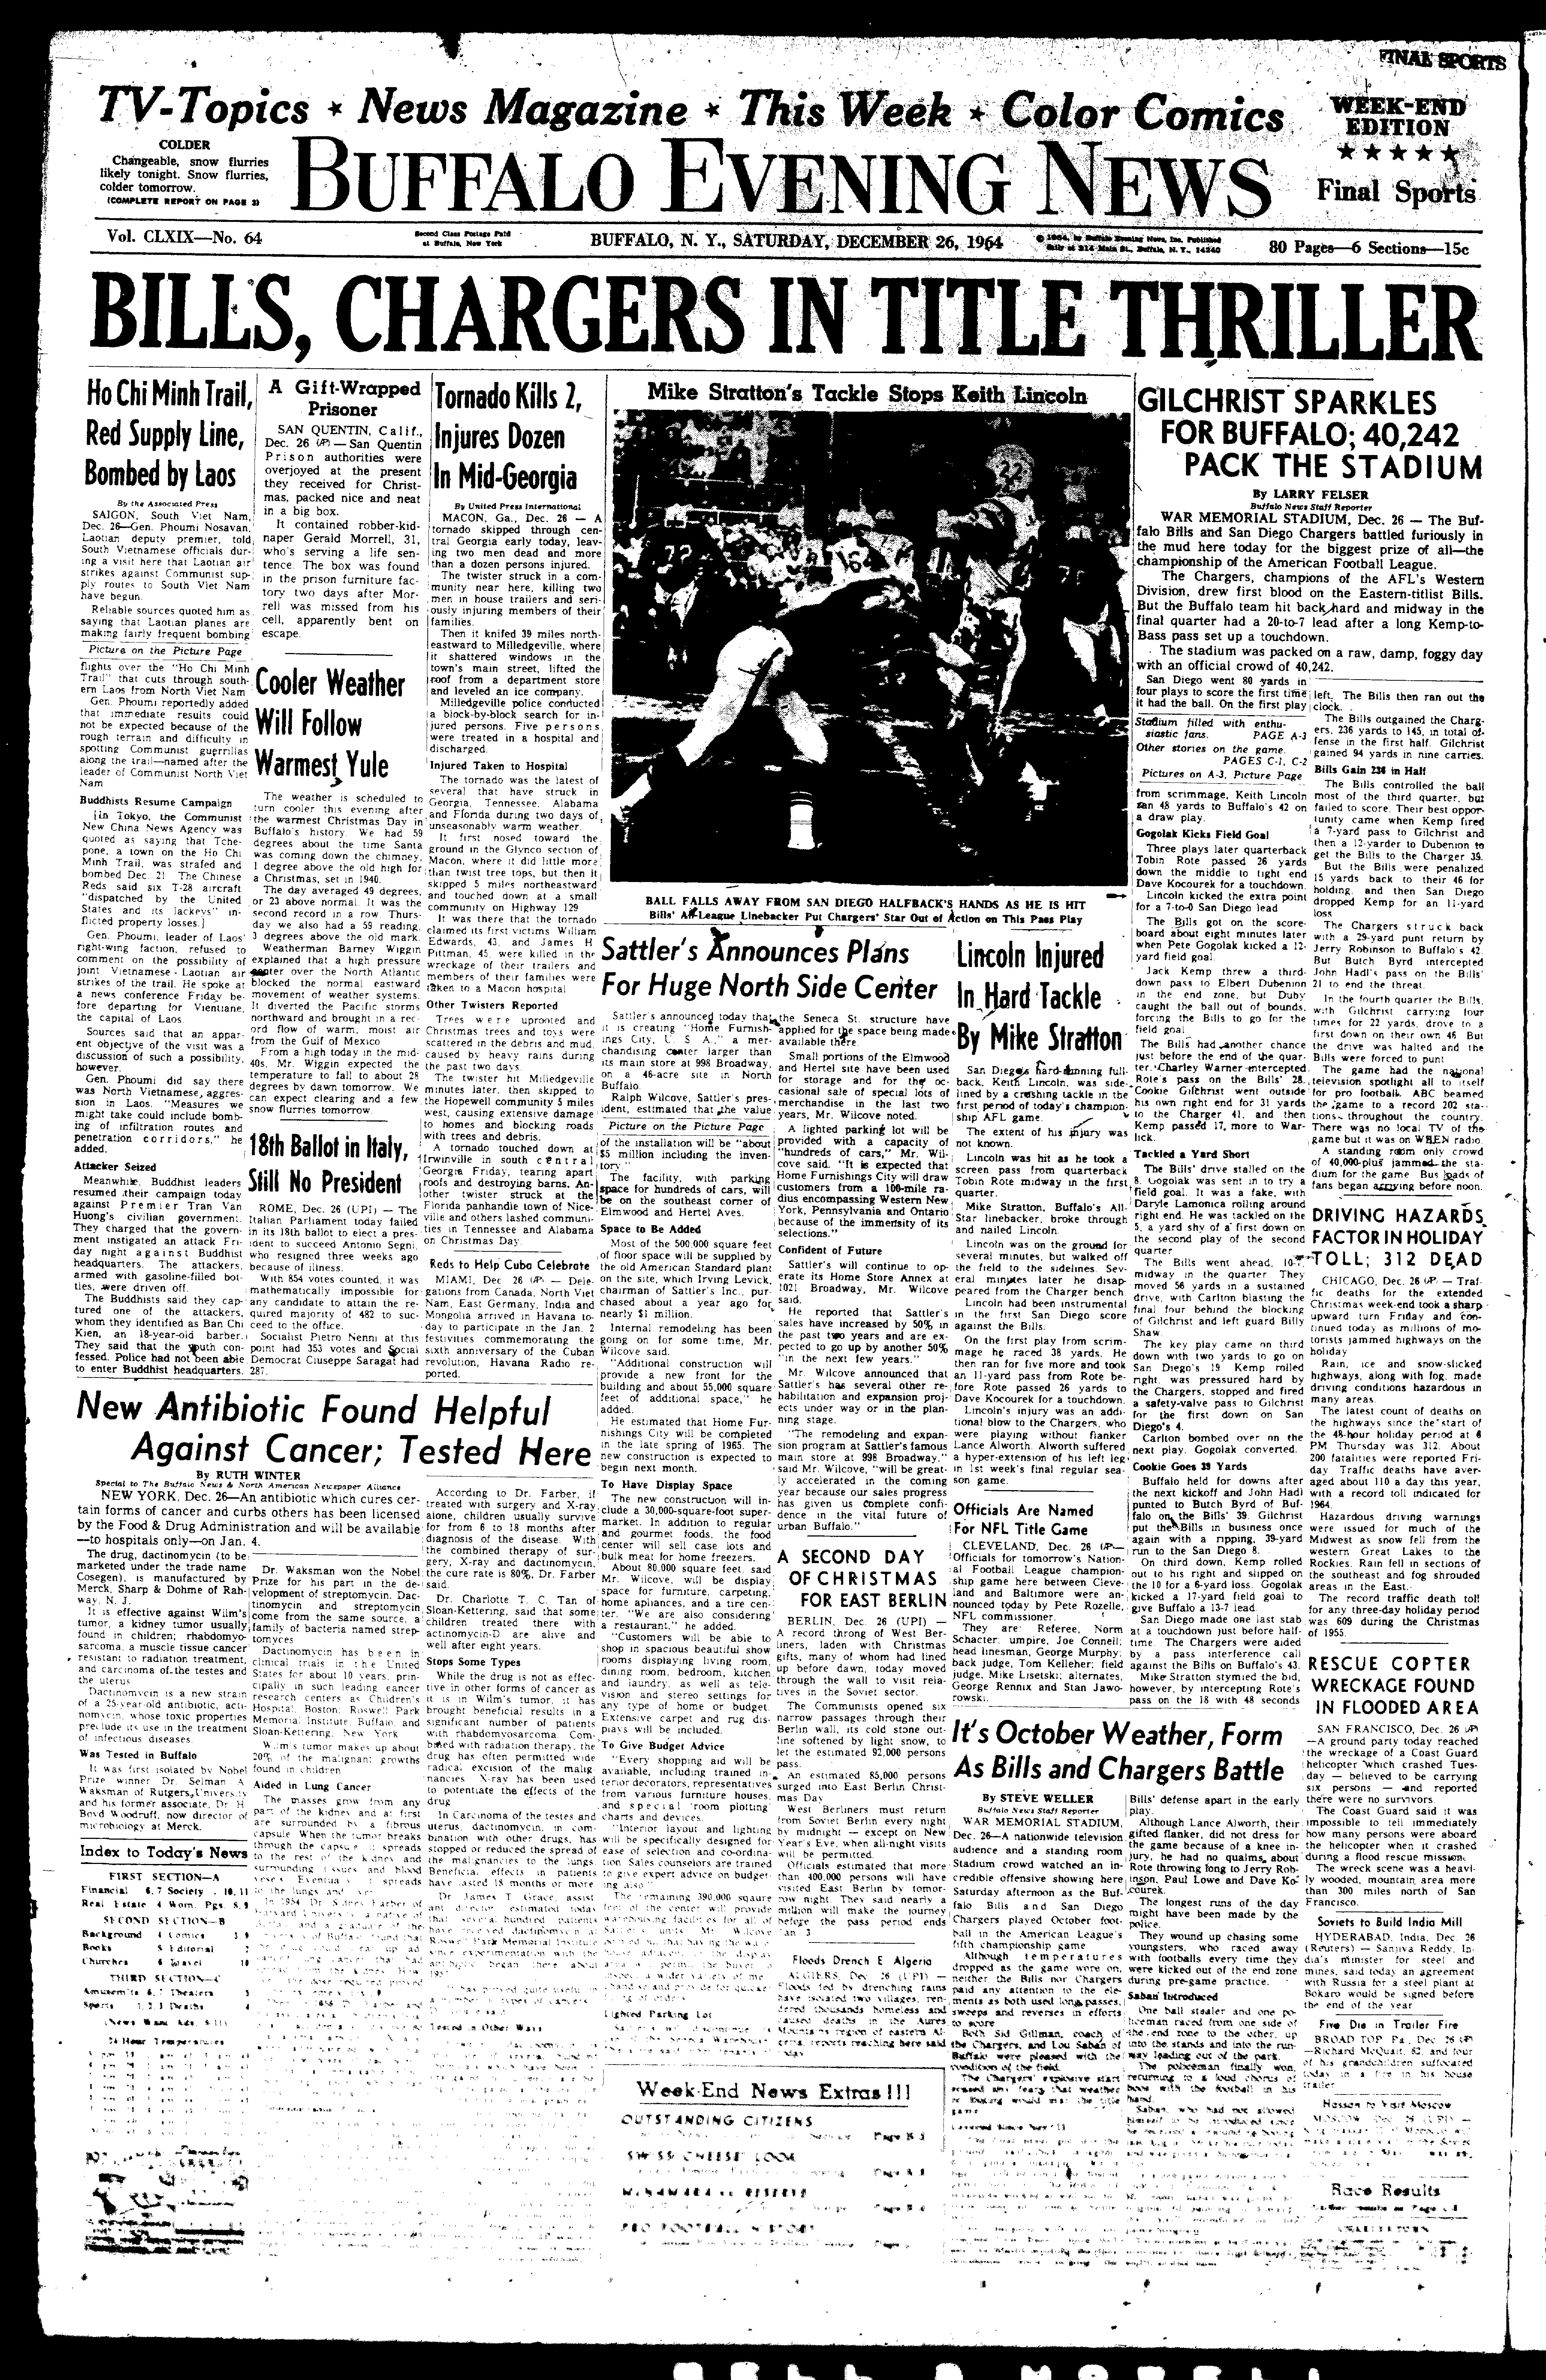 The cover of the buffalo evening news published just before the game